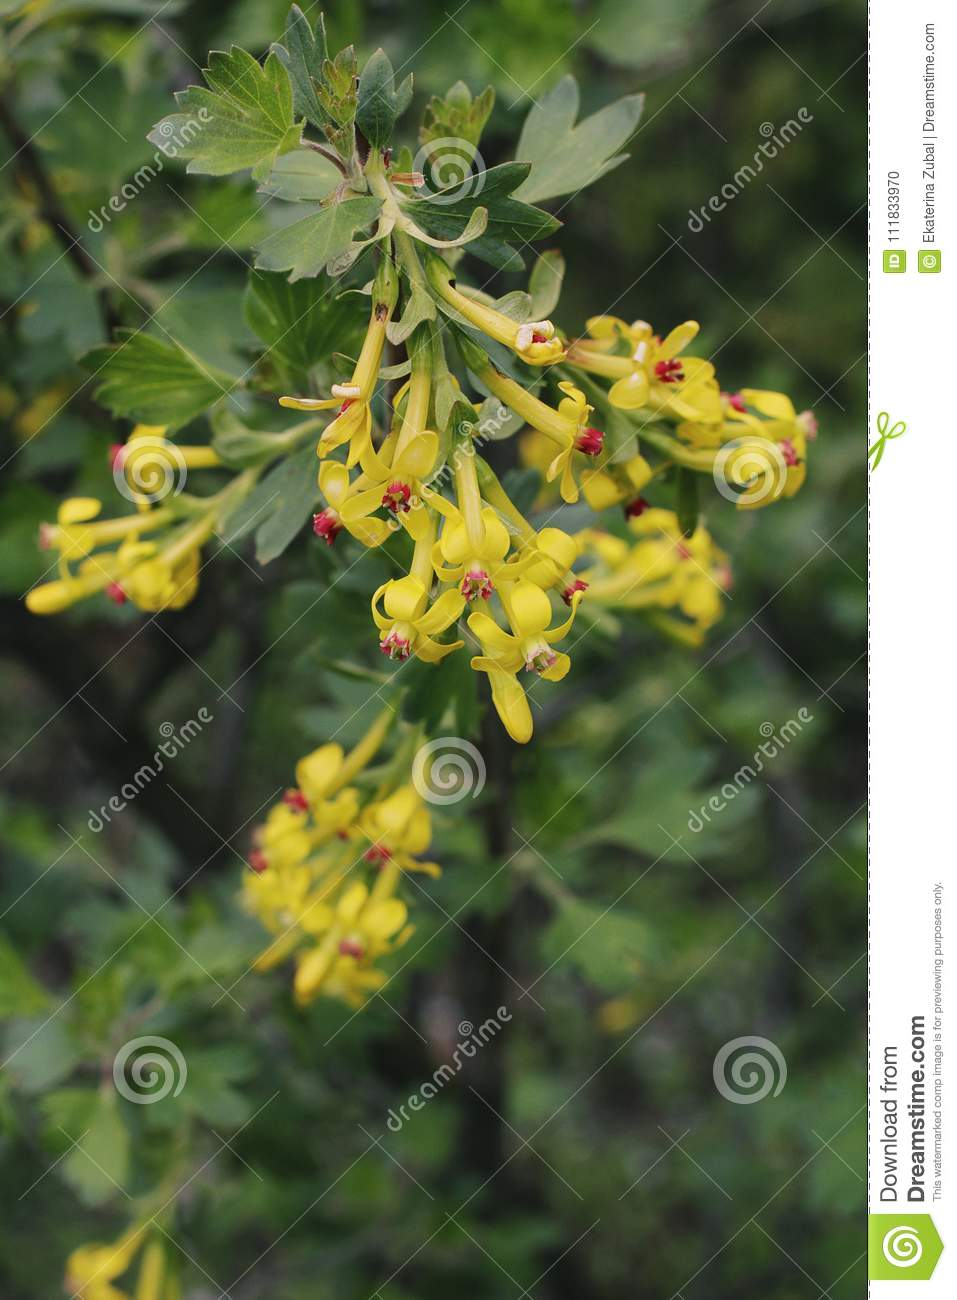 Flowering Bush Of Currant Stock Photo Image Of Floral 111833970